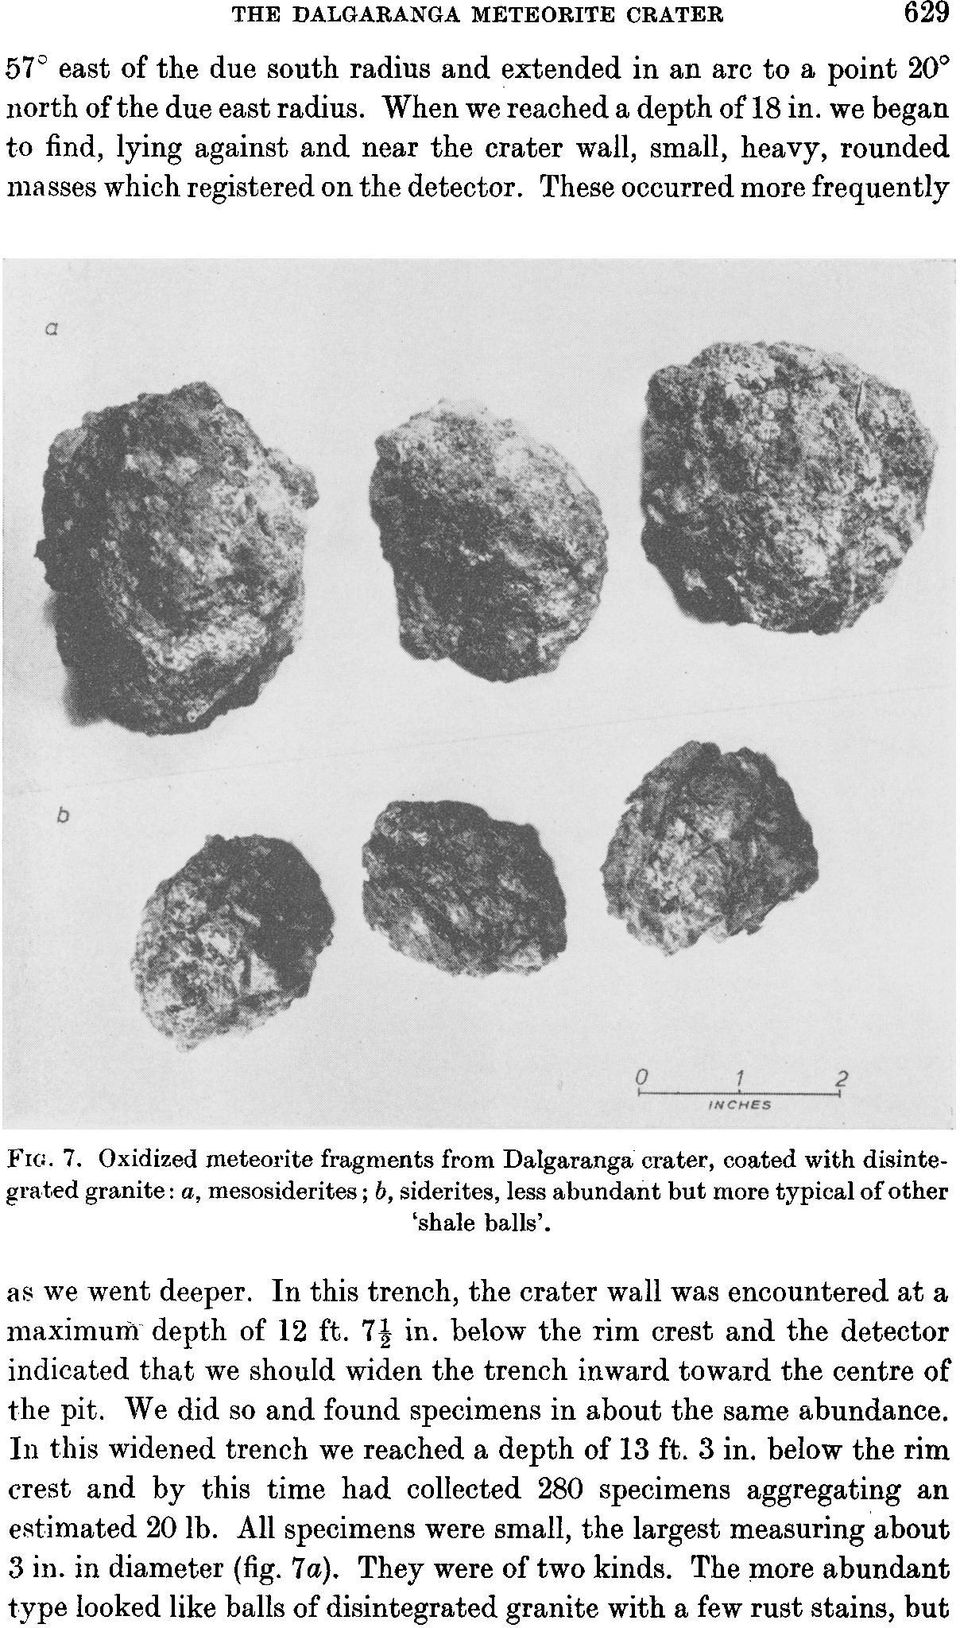 Some of the specimens showed only plessite in the sections polished, and others showed no plessite whatever. The prominence of taenite varied greatly from specimen to specimen.